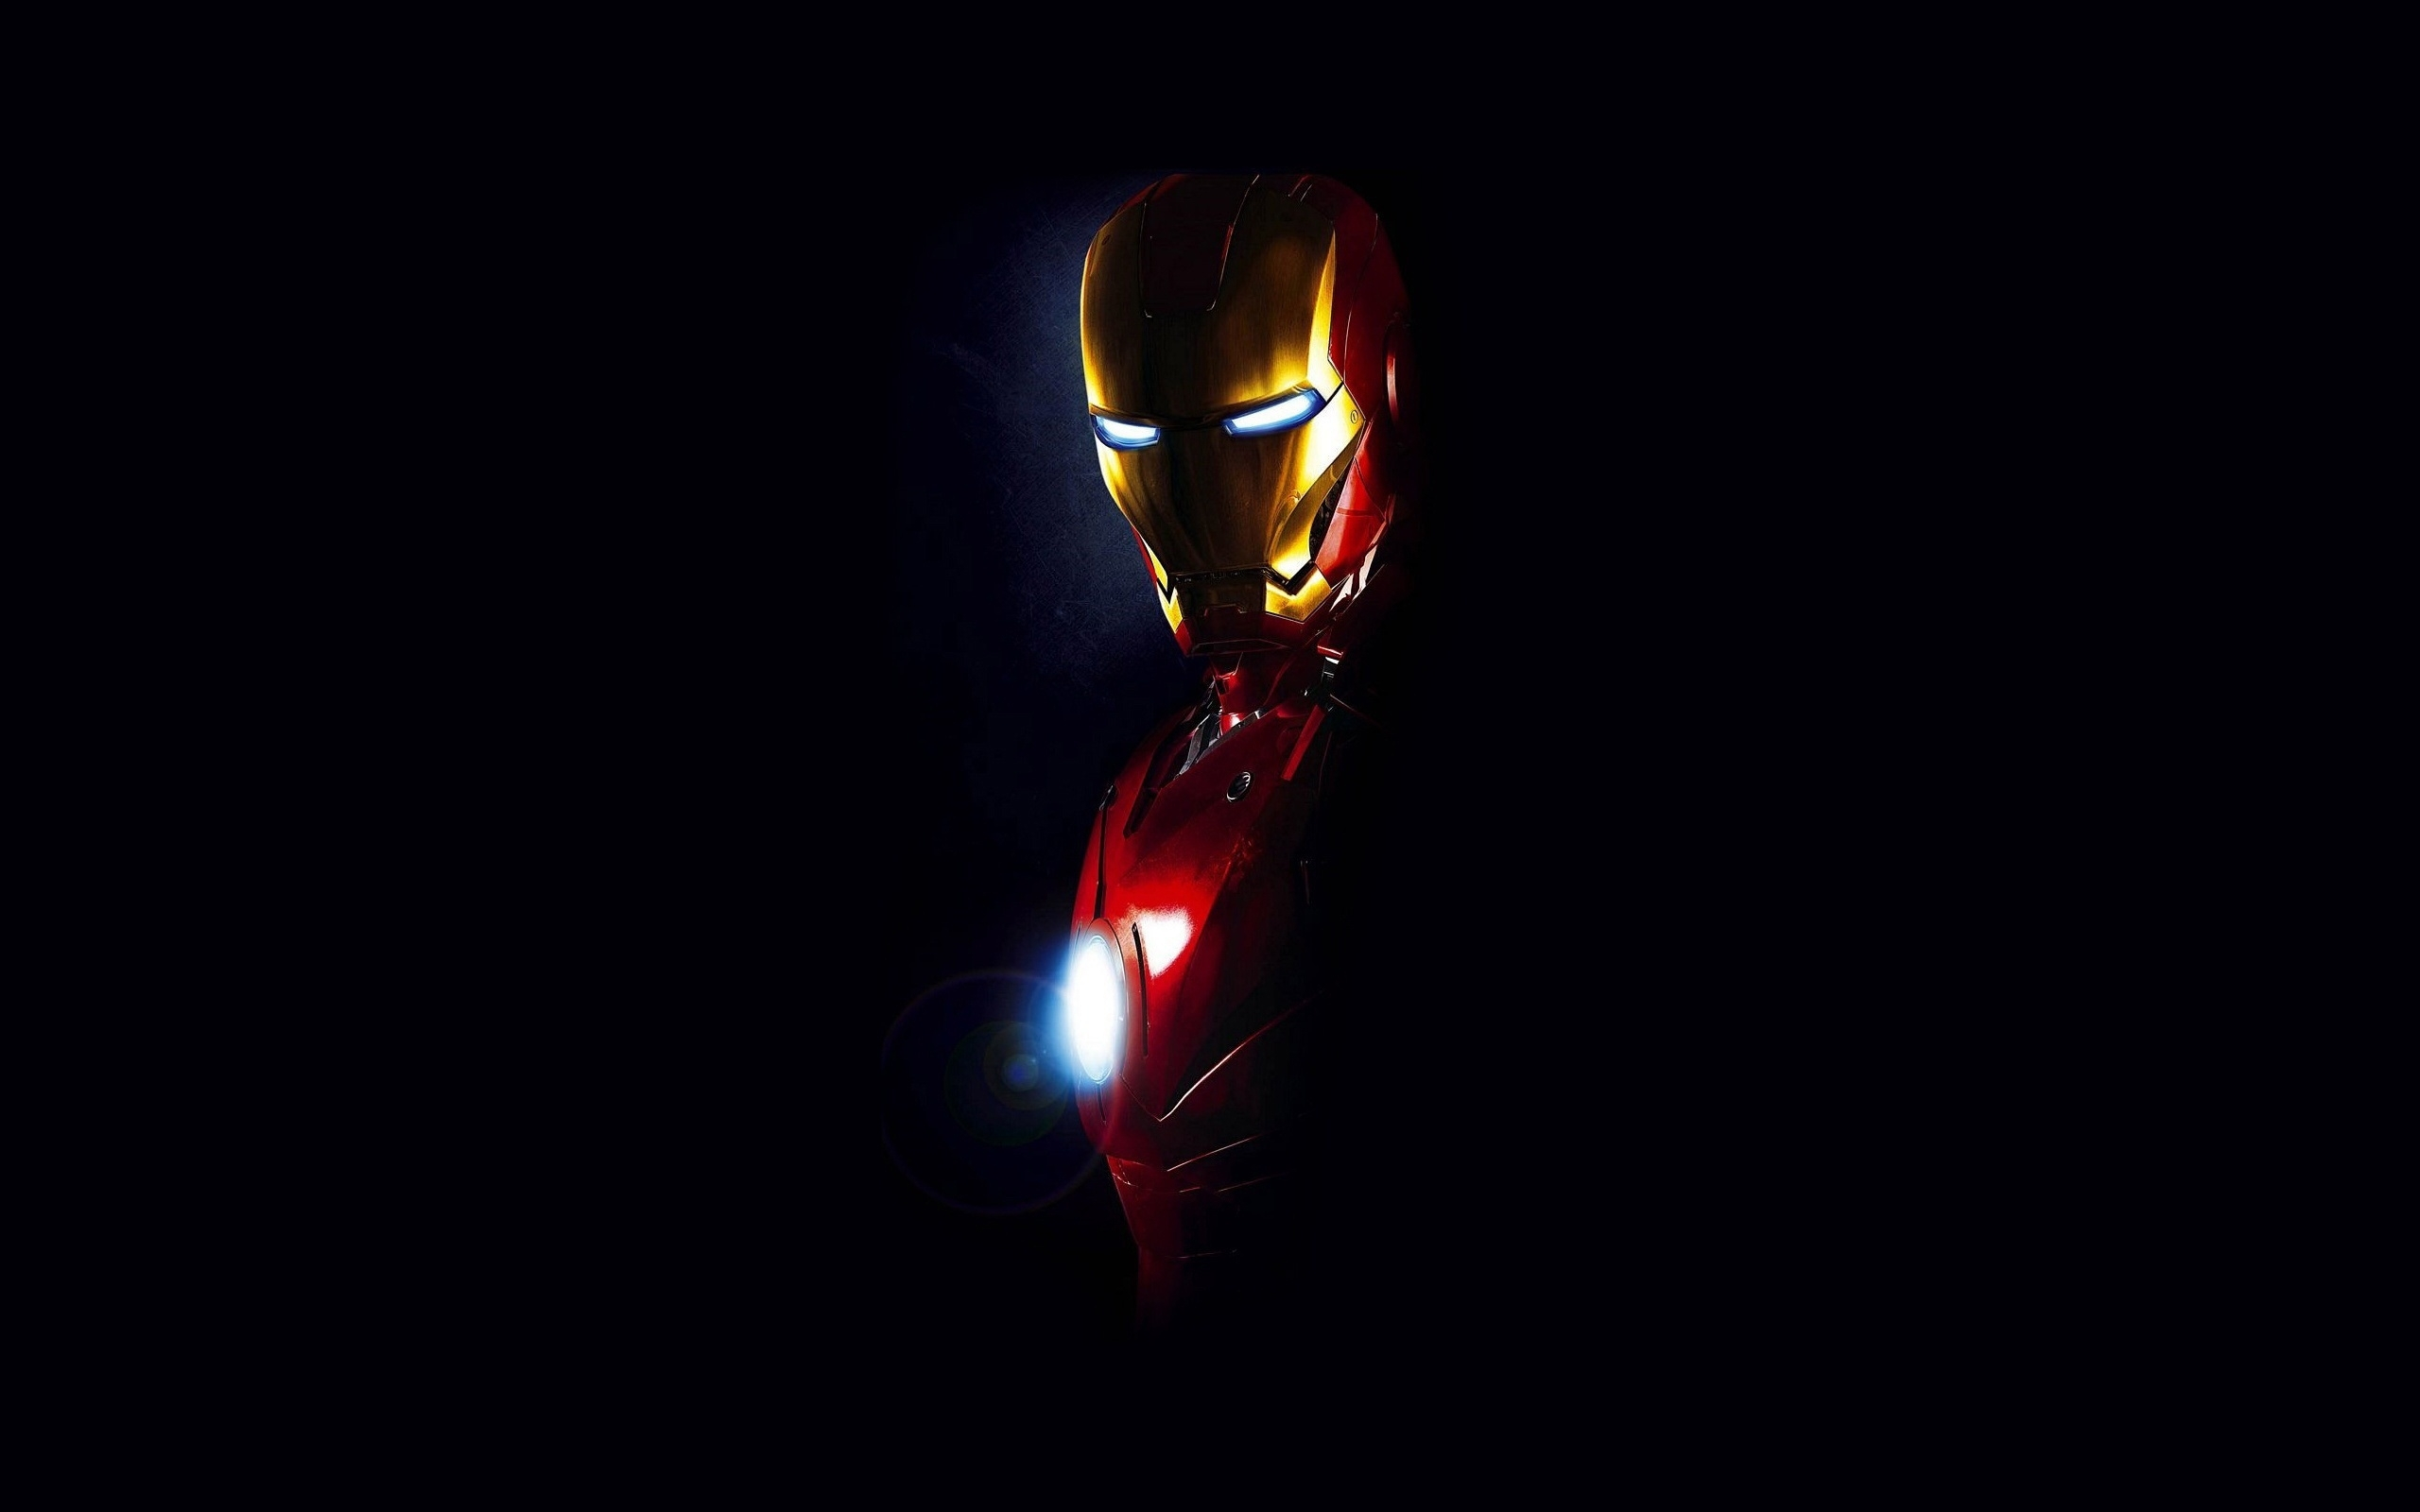 152 iron man hd wallpapers | background images - wallpaper abyss